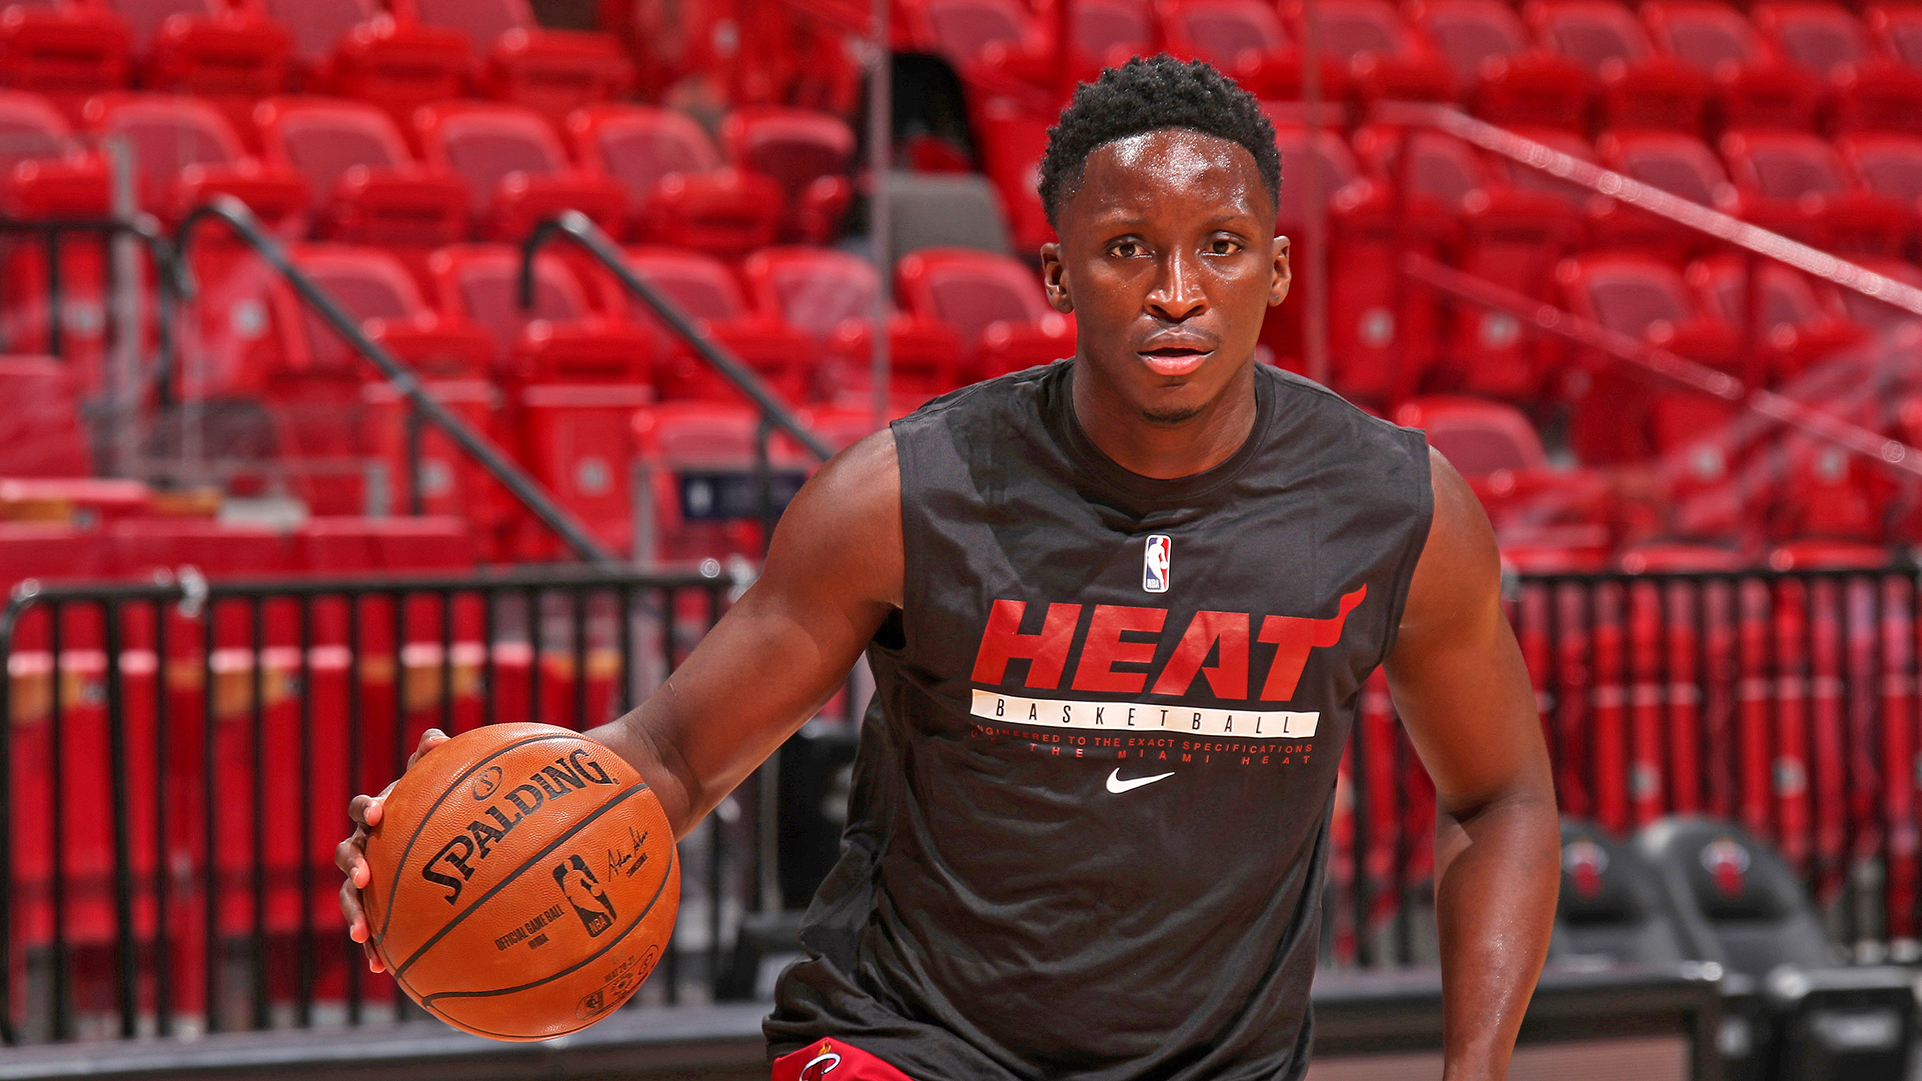 At last, Oladipo finally gets his chance to play with Heat